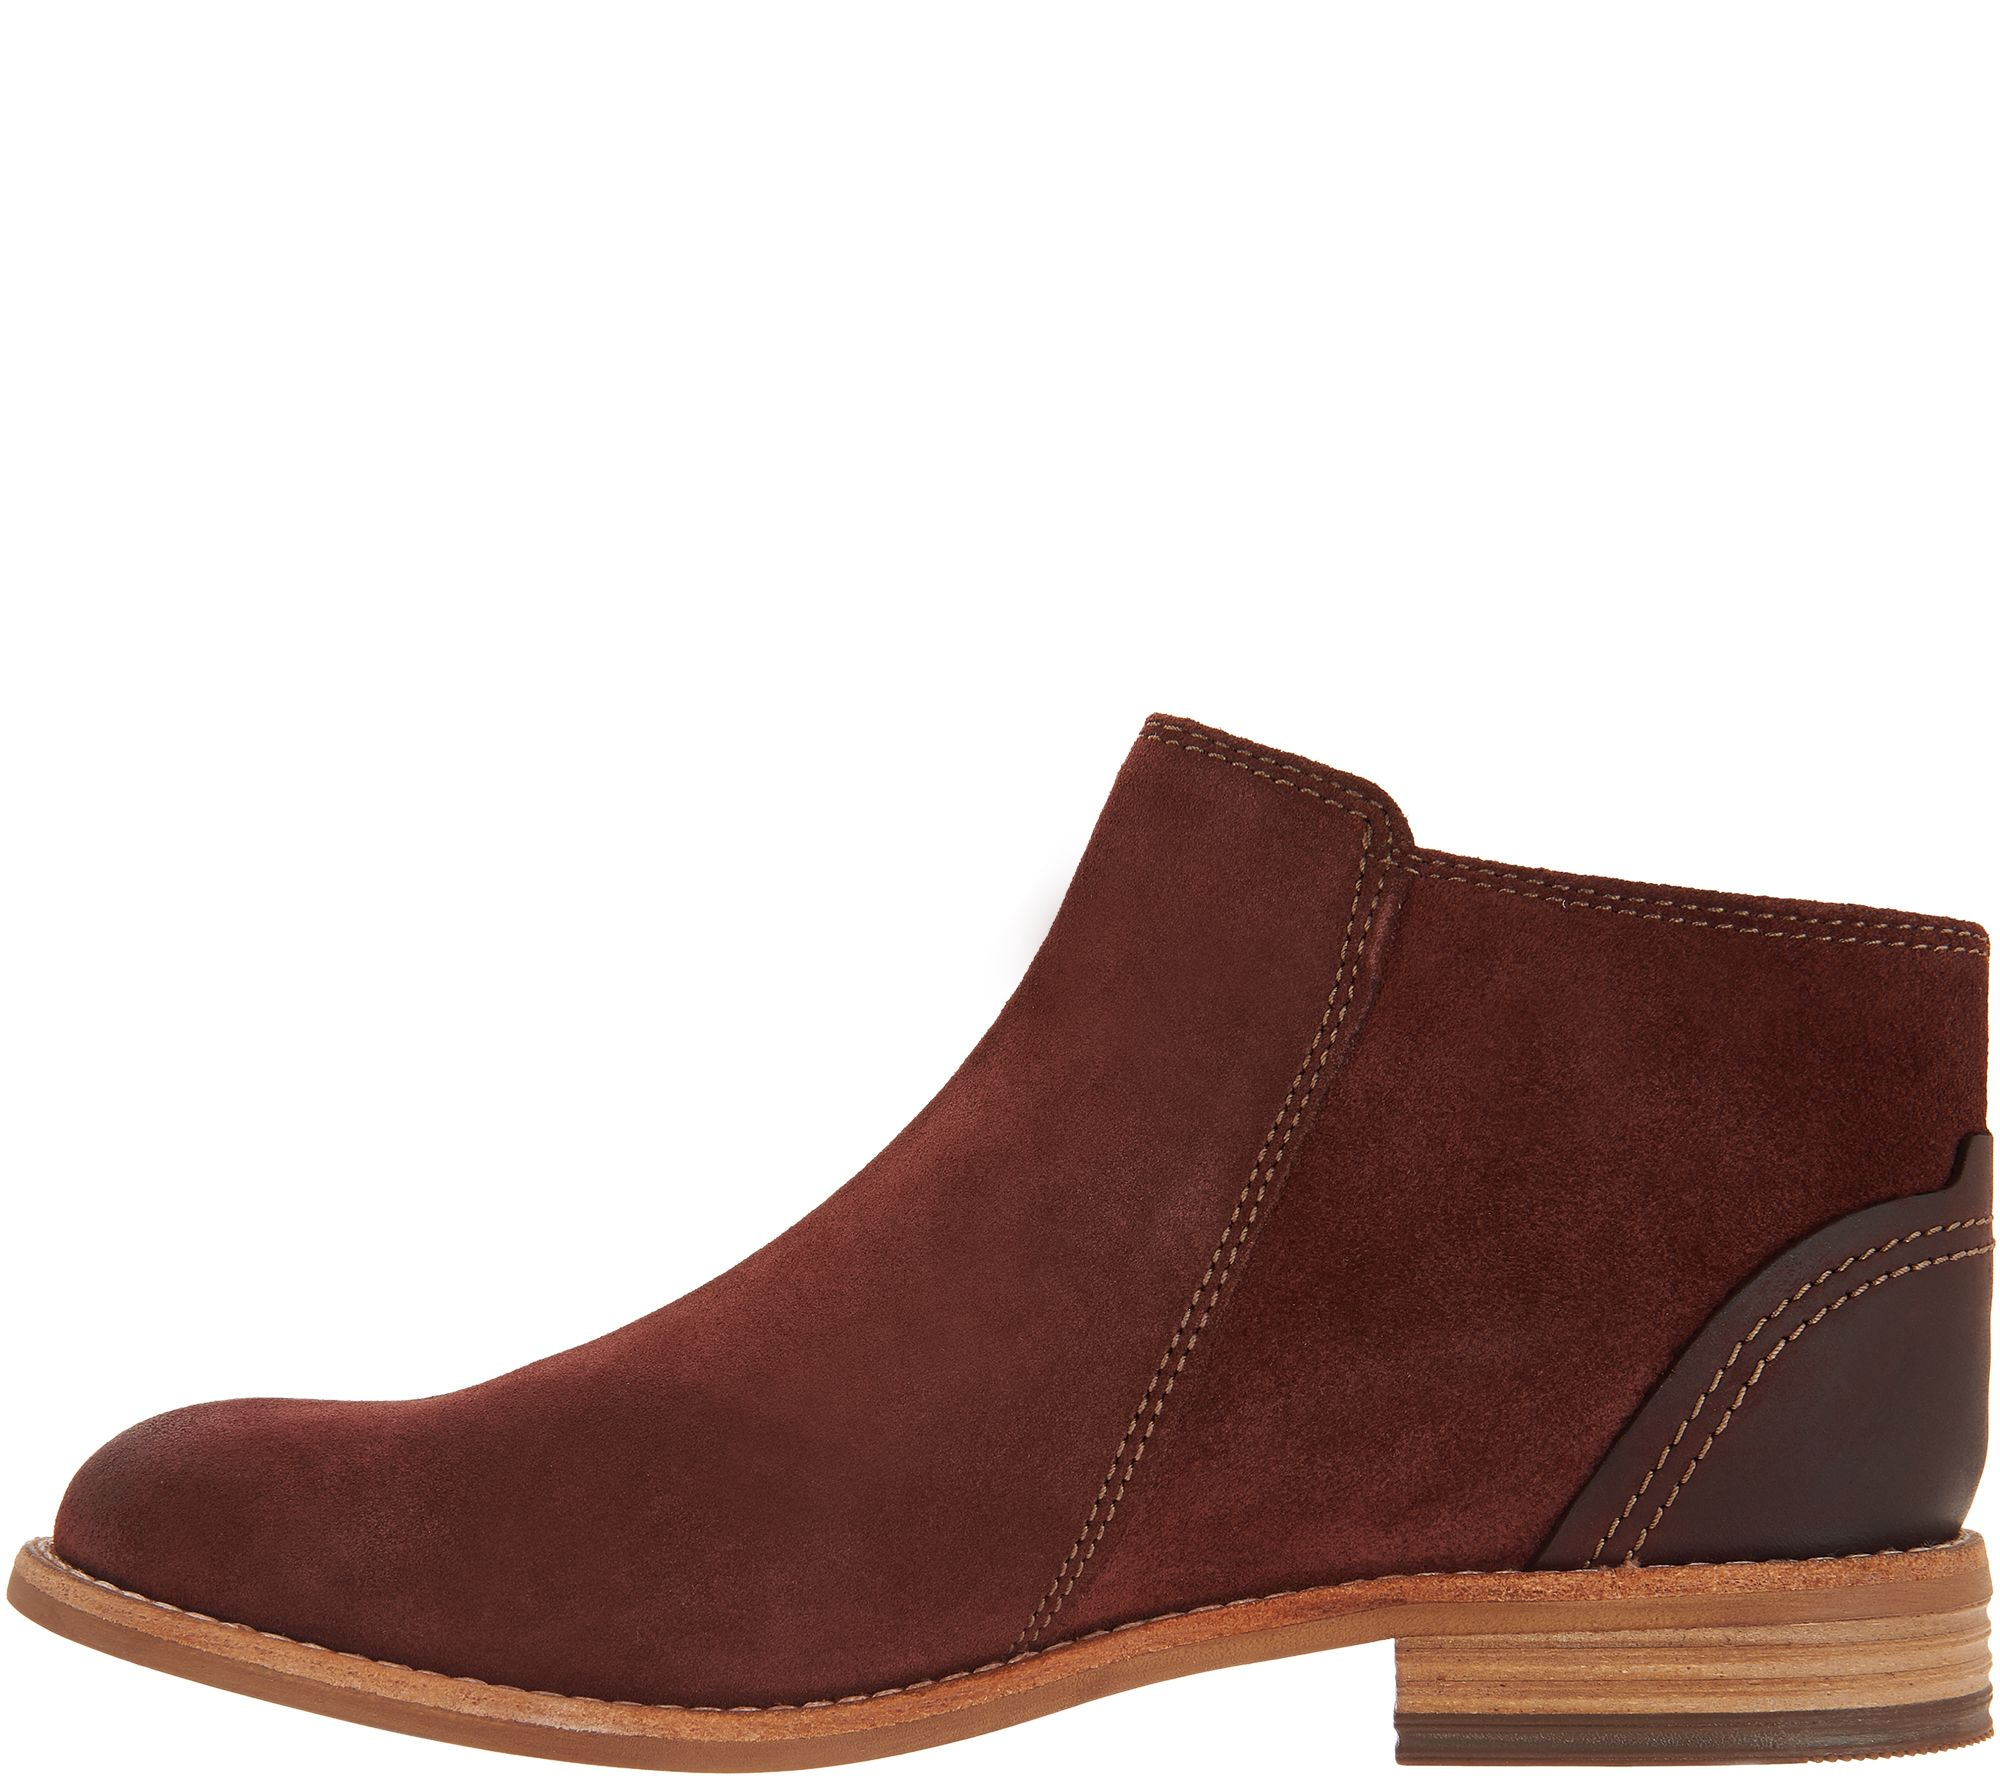 189b0f57db1e Clarks Artisan Leather Side Zip Ankle Booties - Maypearl Juno - Page 1 —  QVC.com